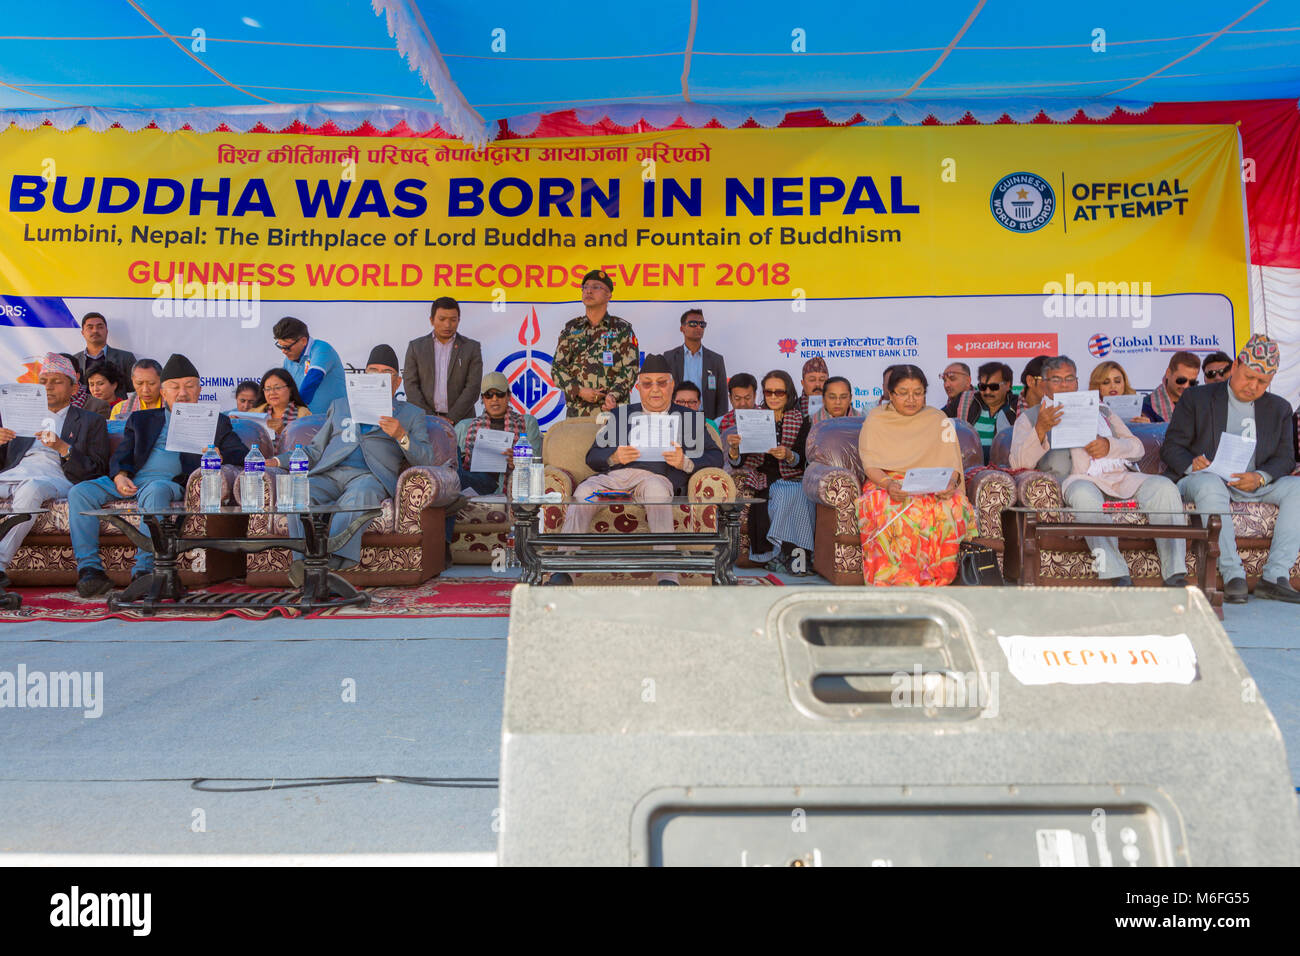 Kathmandu Nepal -Mar 3,2018: People taking part in the Guinness World Records Event 2018 organised to recite 'Buddha - Stock Image